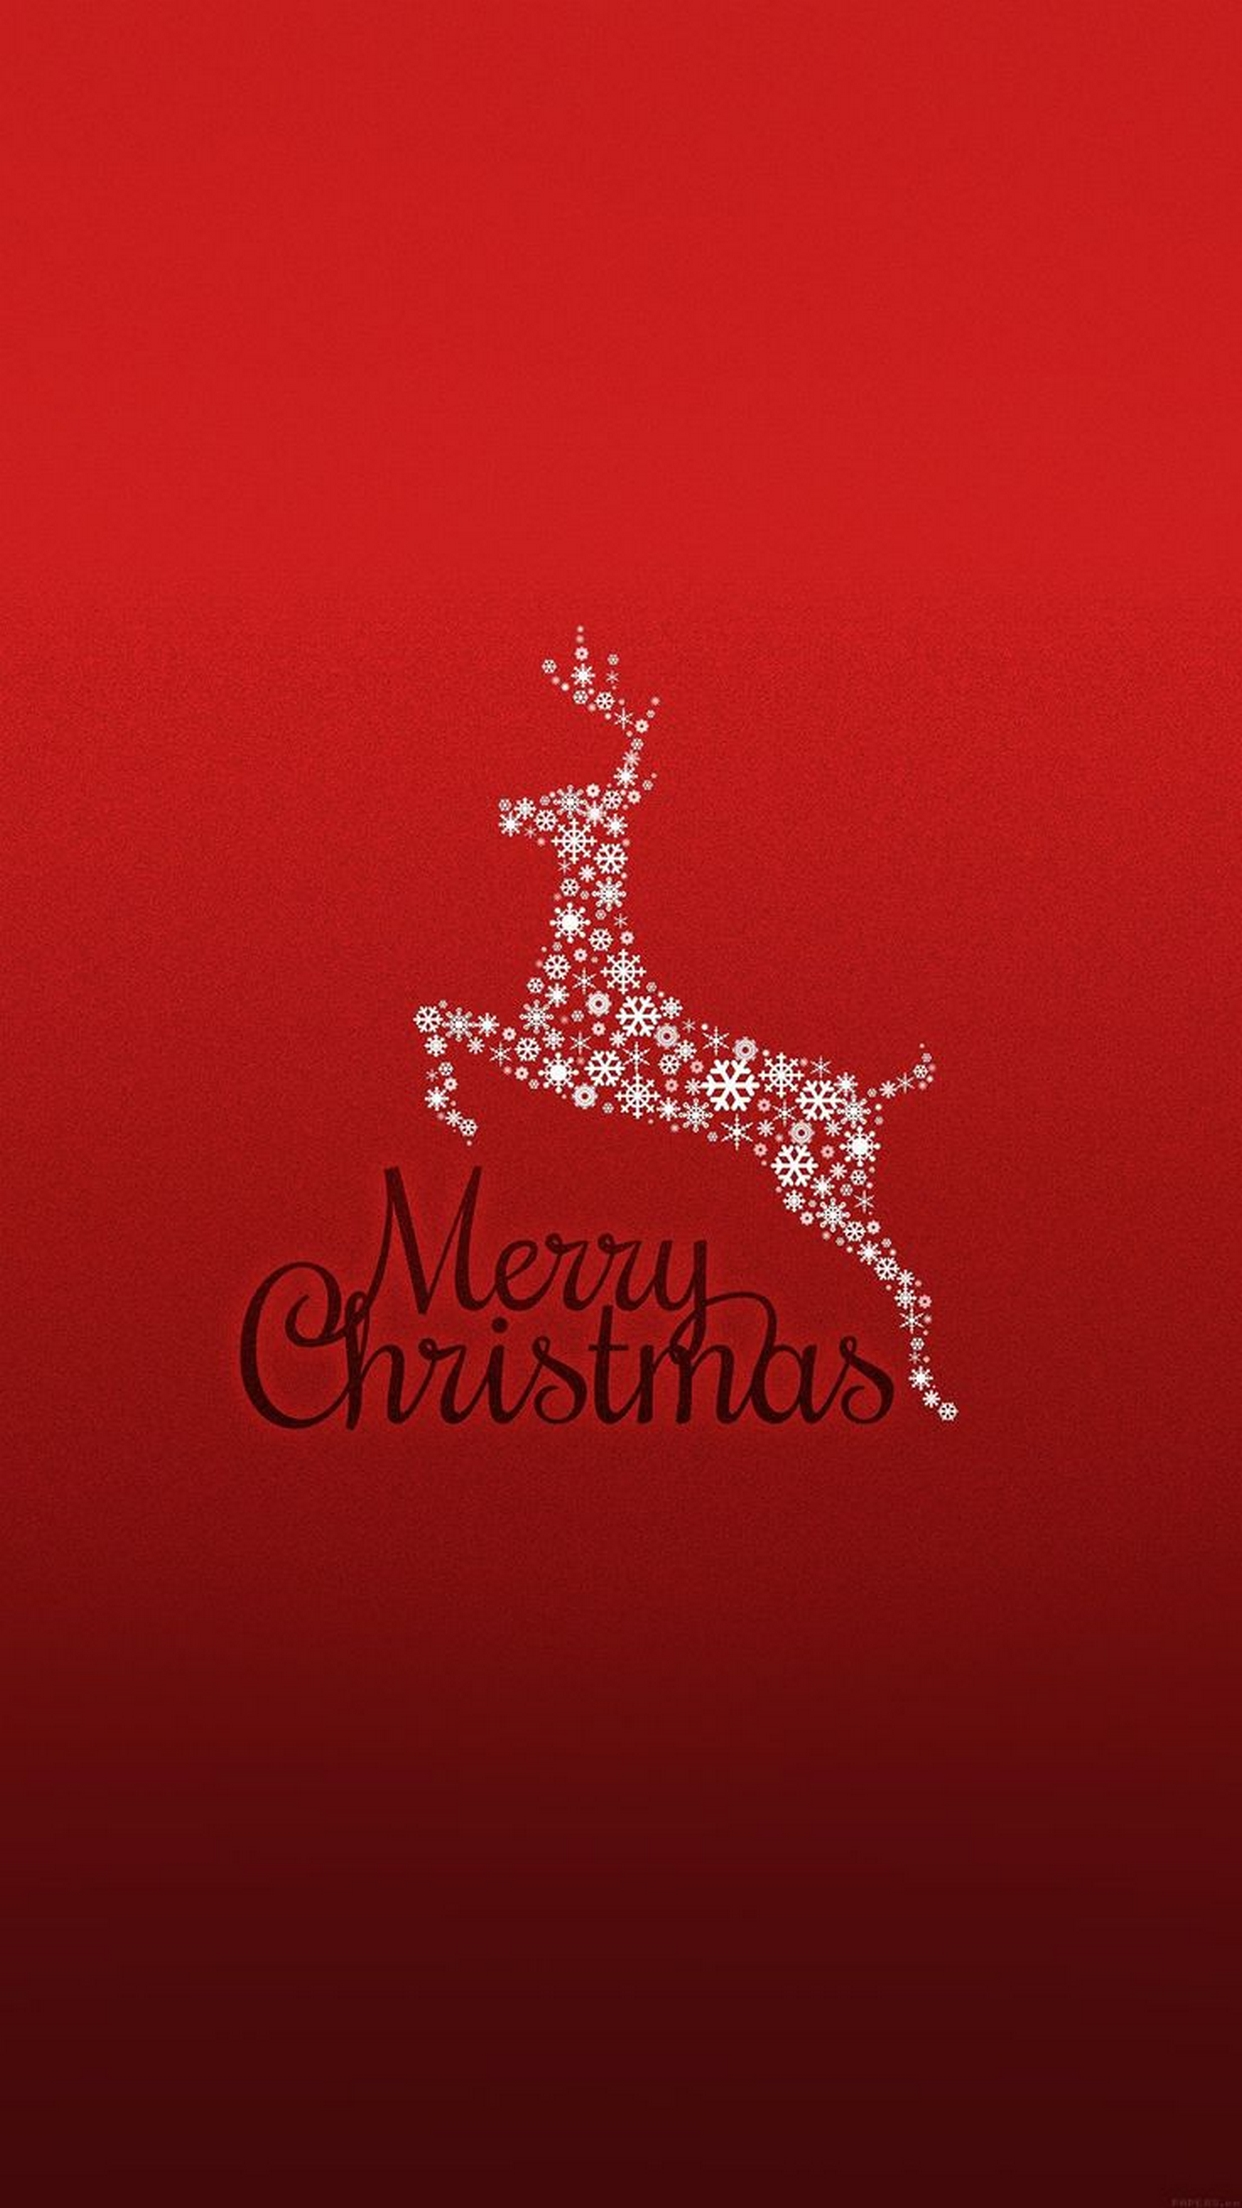 merry christmas deer red background